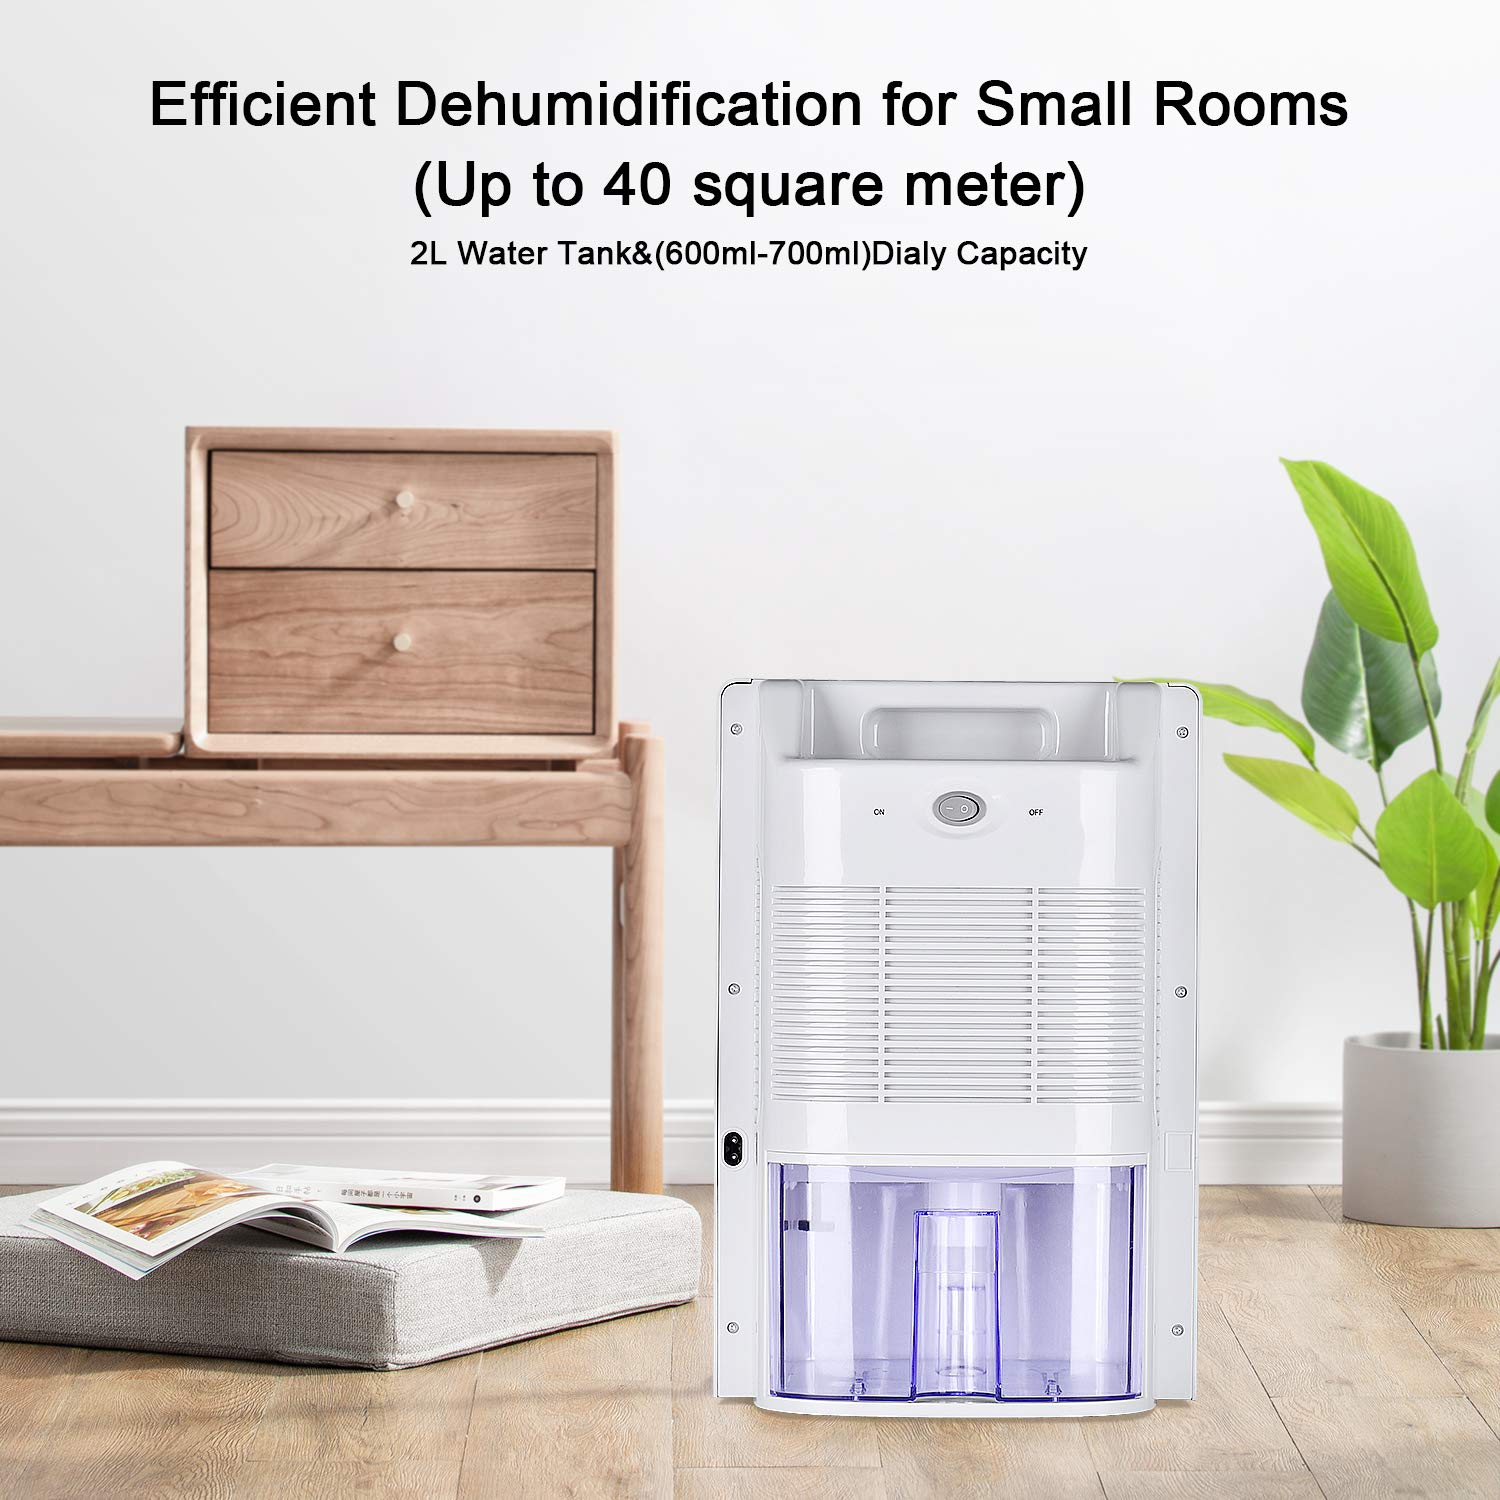 Gocheer Dehumidifier with 2000ml Water Tank, Portable Low Weight Whisper-Quiet Mini Electric Home Dehumidifier for Moisture Mould Damp in Bedroom, Office, Bathroom, Garage,Garage(300 sq ft)